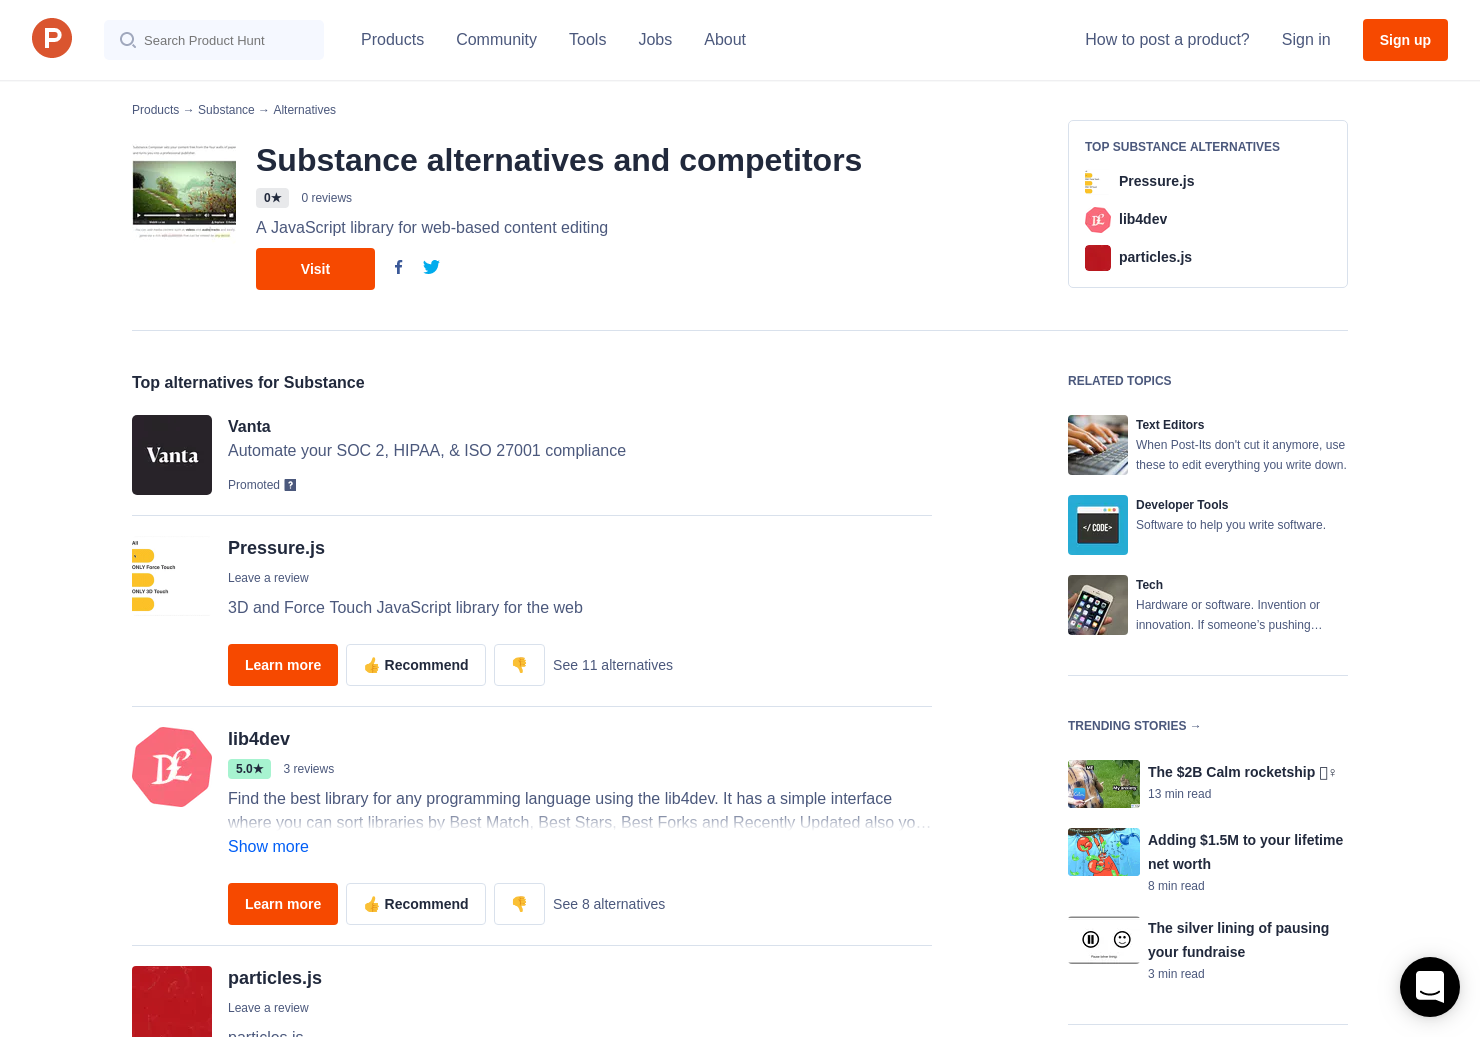 6 Alternatives to Substance | Product Hunt